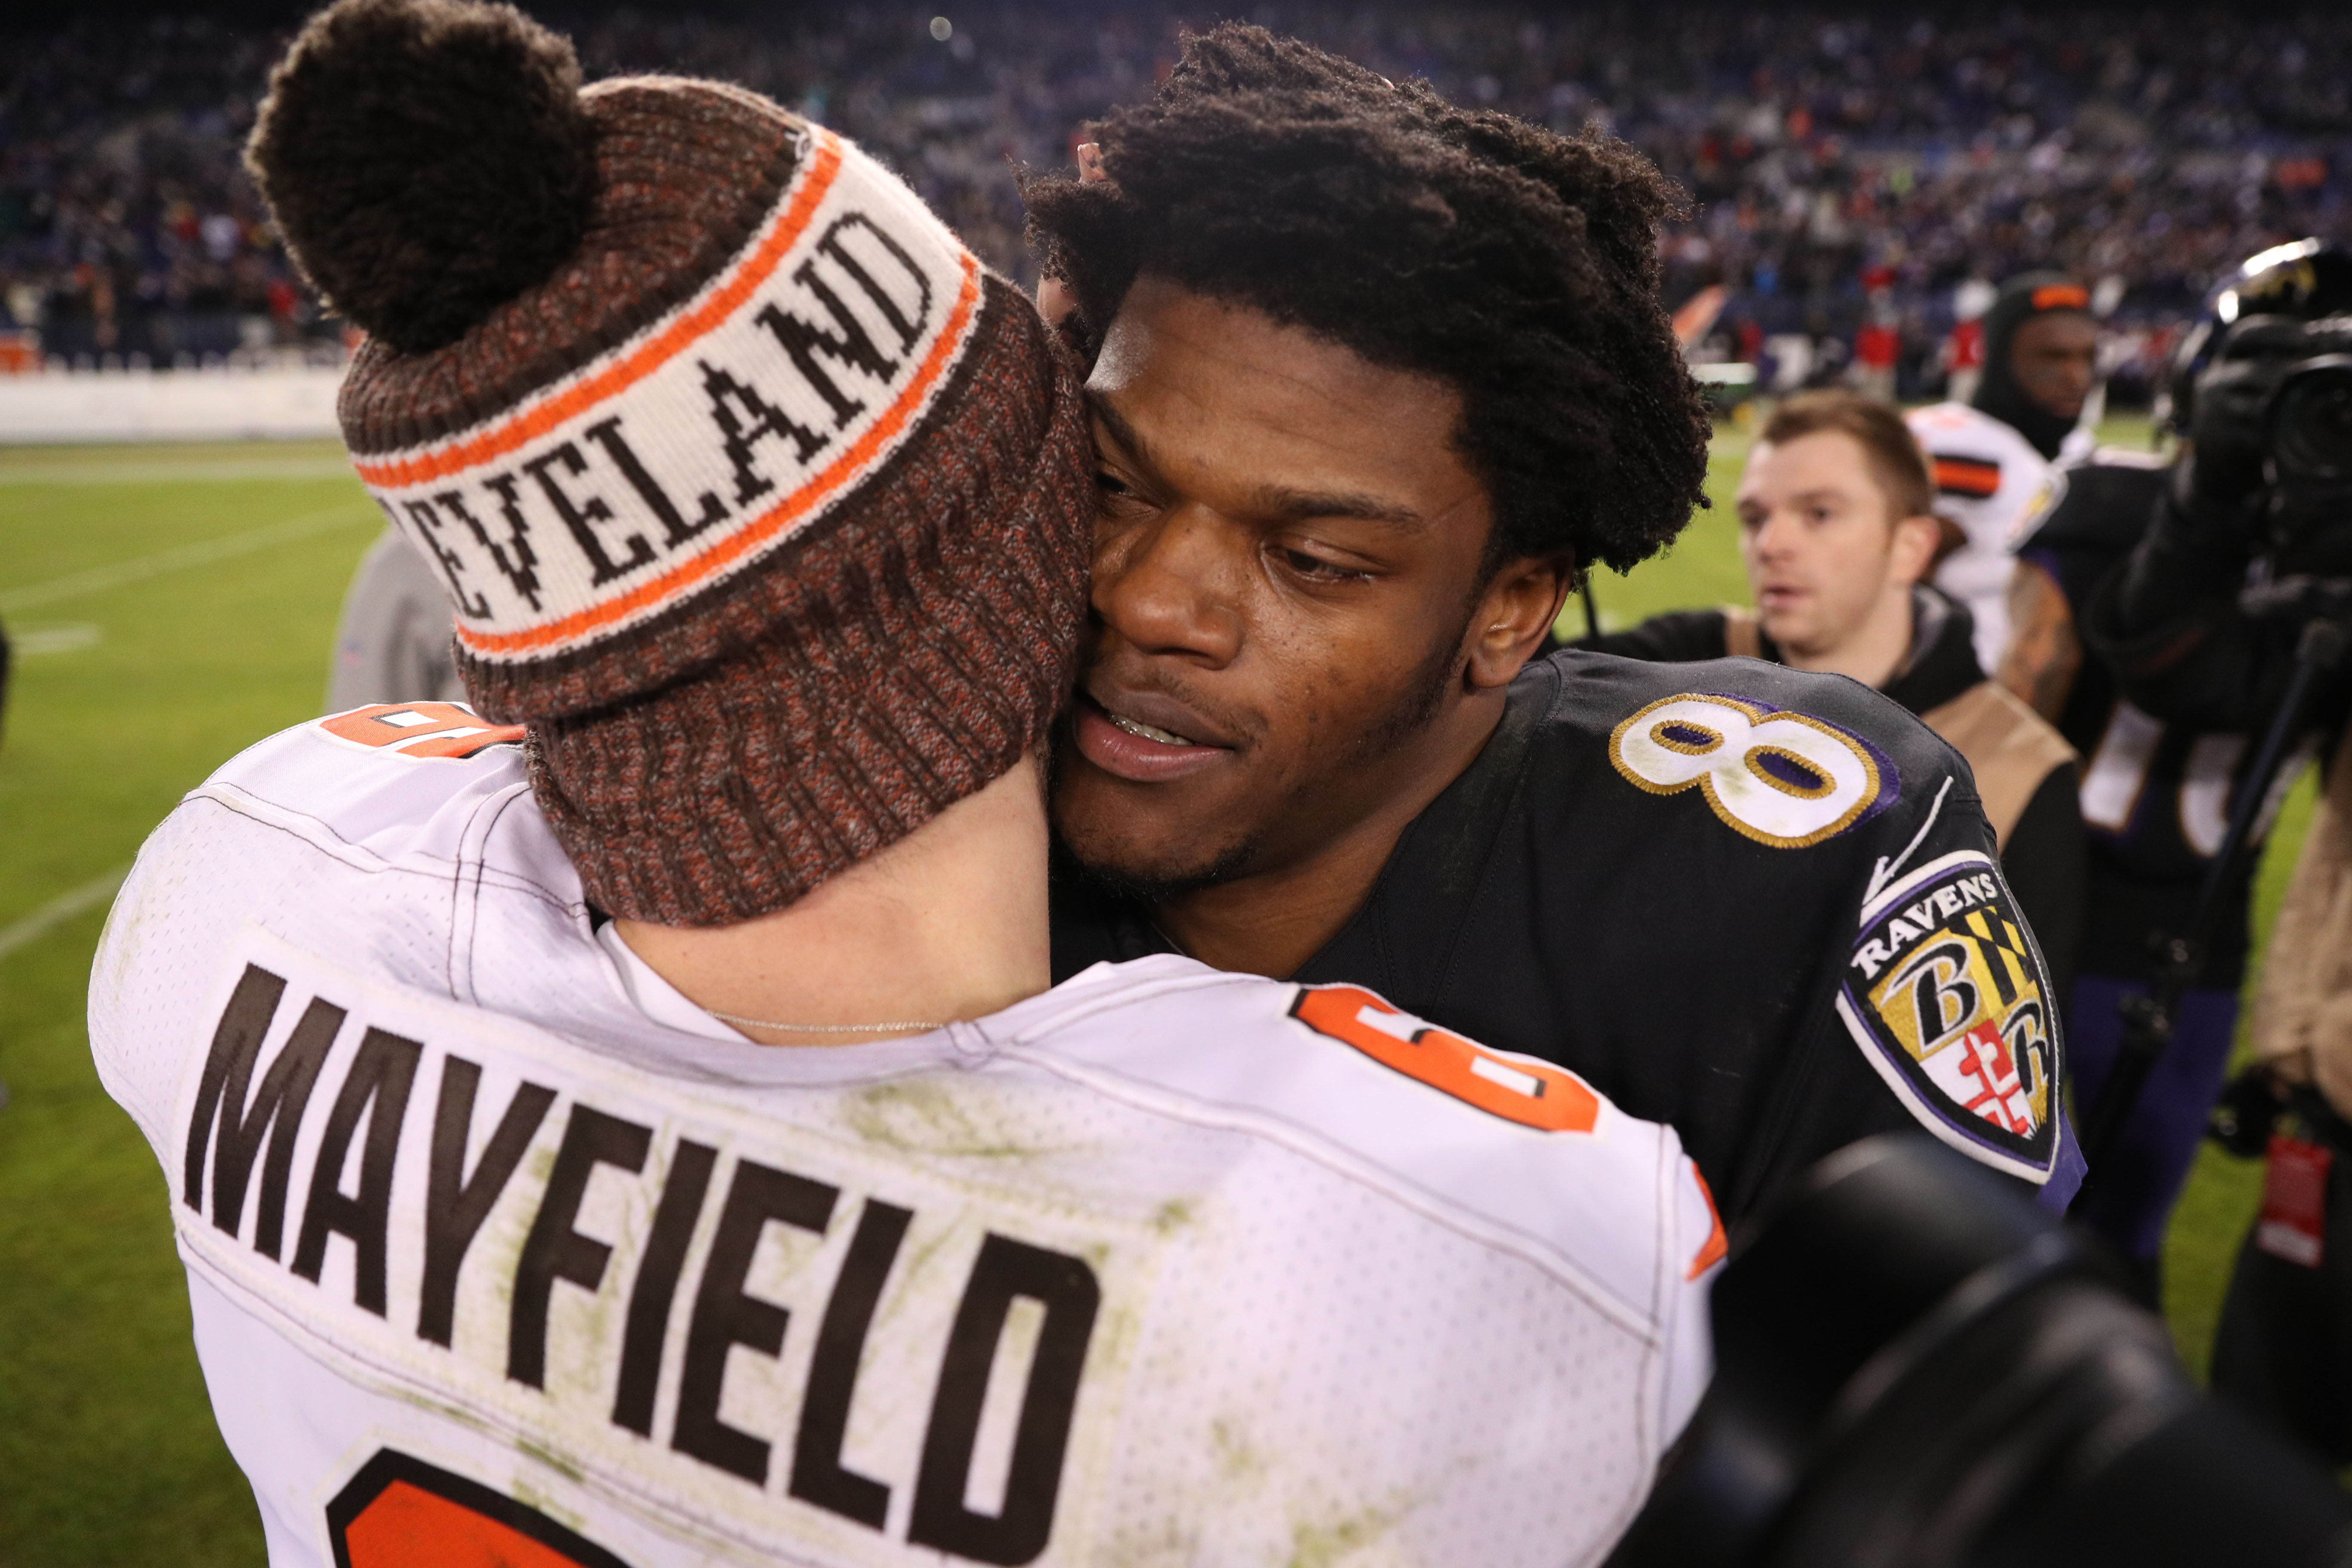 Quarterback Lamar Jackson of the Baltimore Ravens hugs quarterback Baker Mayfield of the Cleveland Browns after the Baltimore Ravens 26-24 win over Cleveland Browns at M&T Bank Stadium on December 30, 2018 in Baltimore, Maryland.